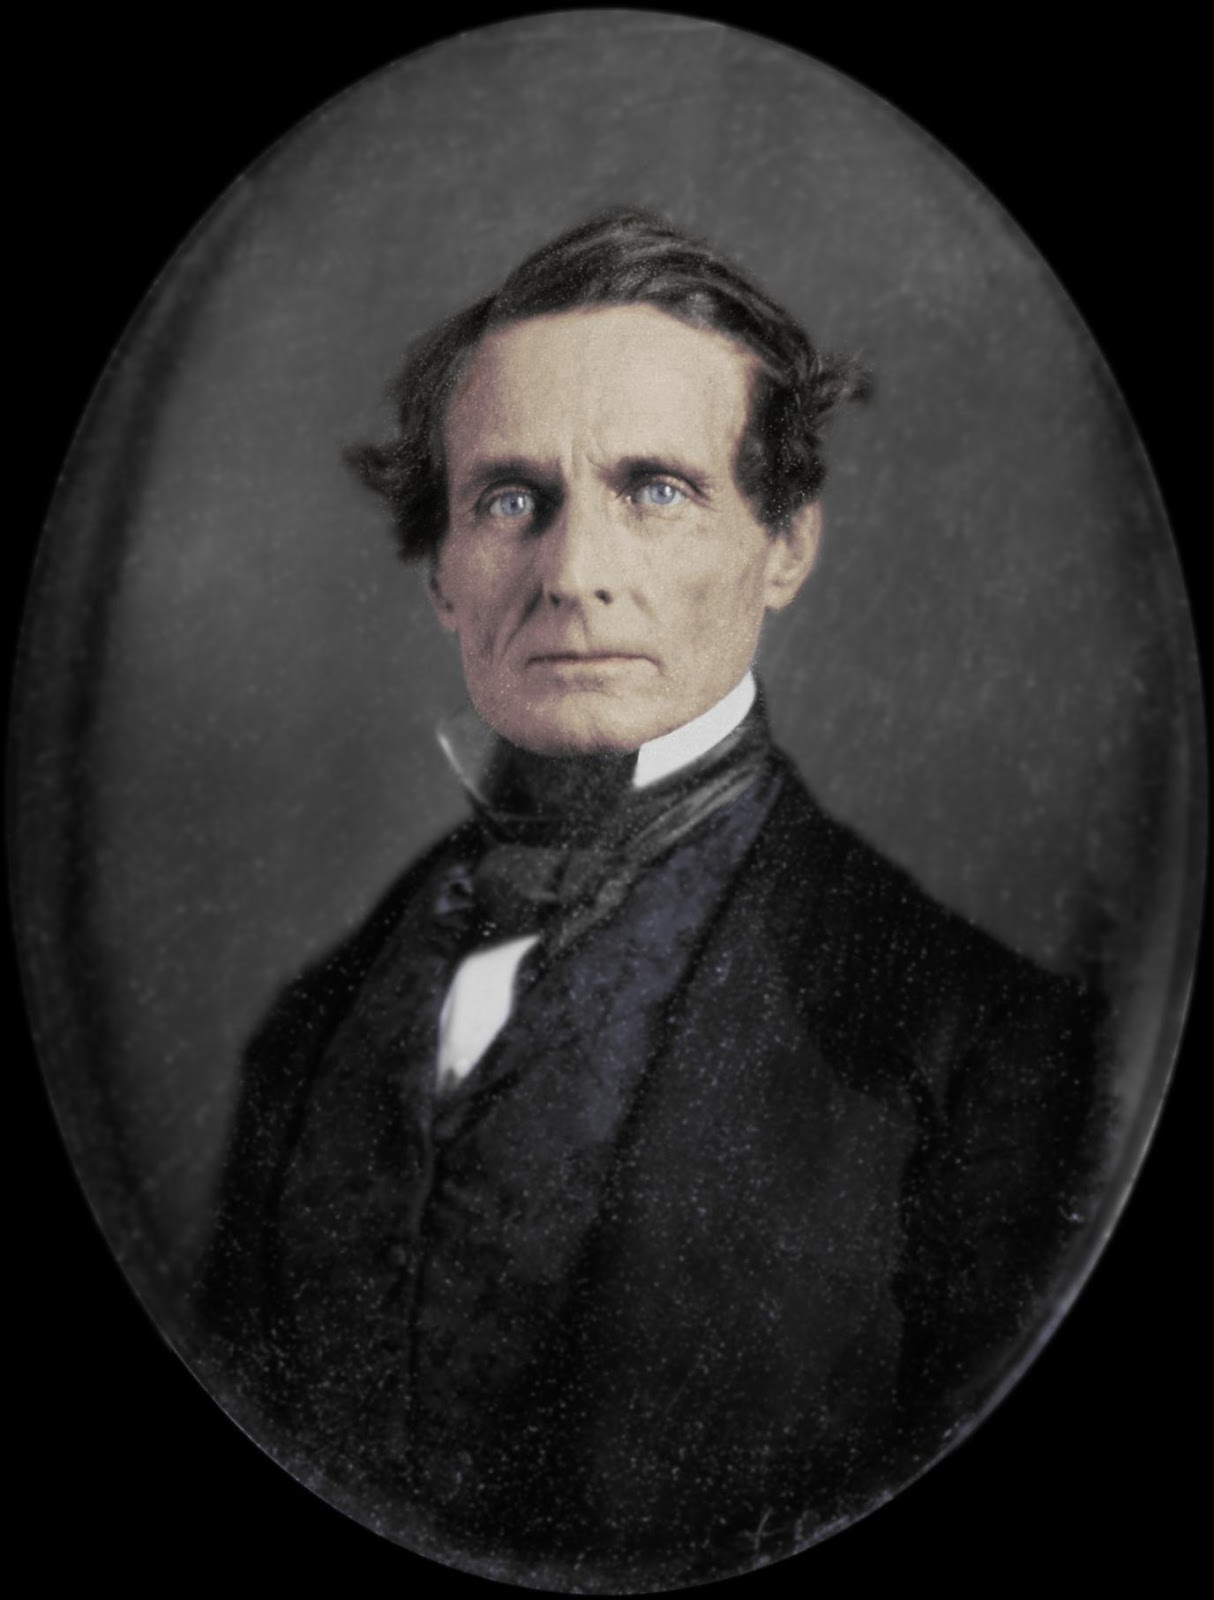 jefferson davis precidency of the confederate states of america Abraham lincoln-- from the presidents of the united states of america a confederate five-dollar abraham lincoln was the first president to be born outside of.